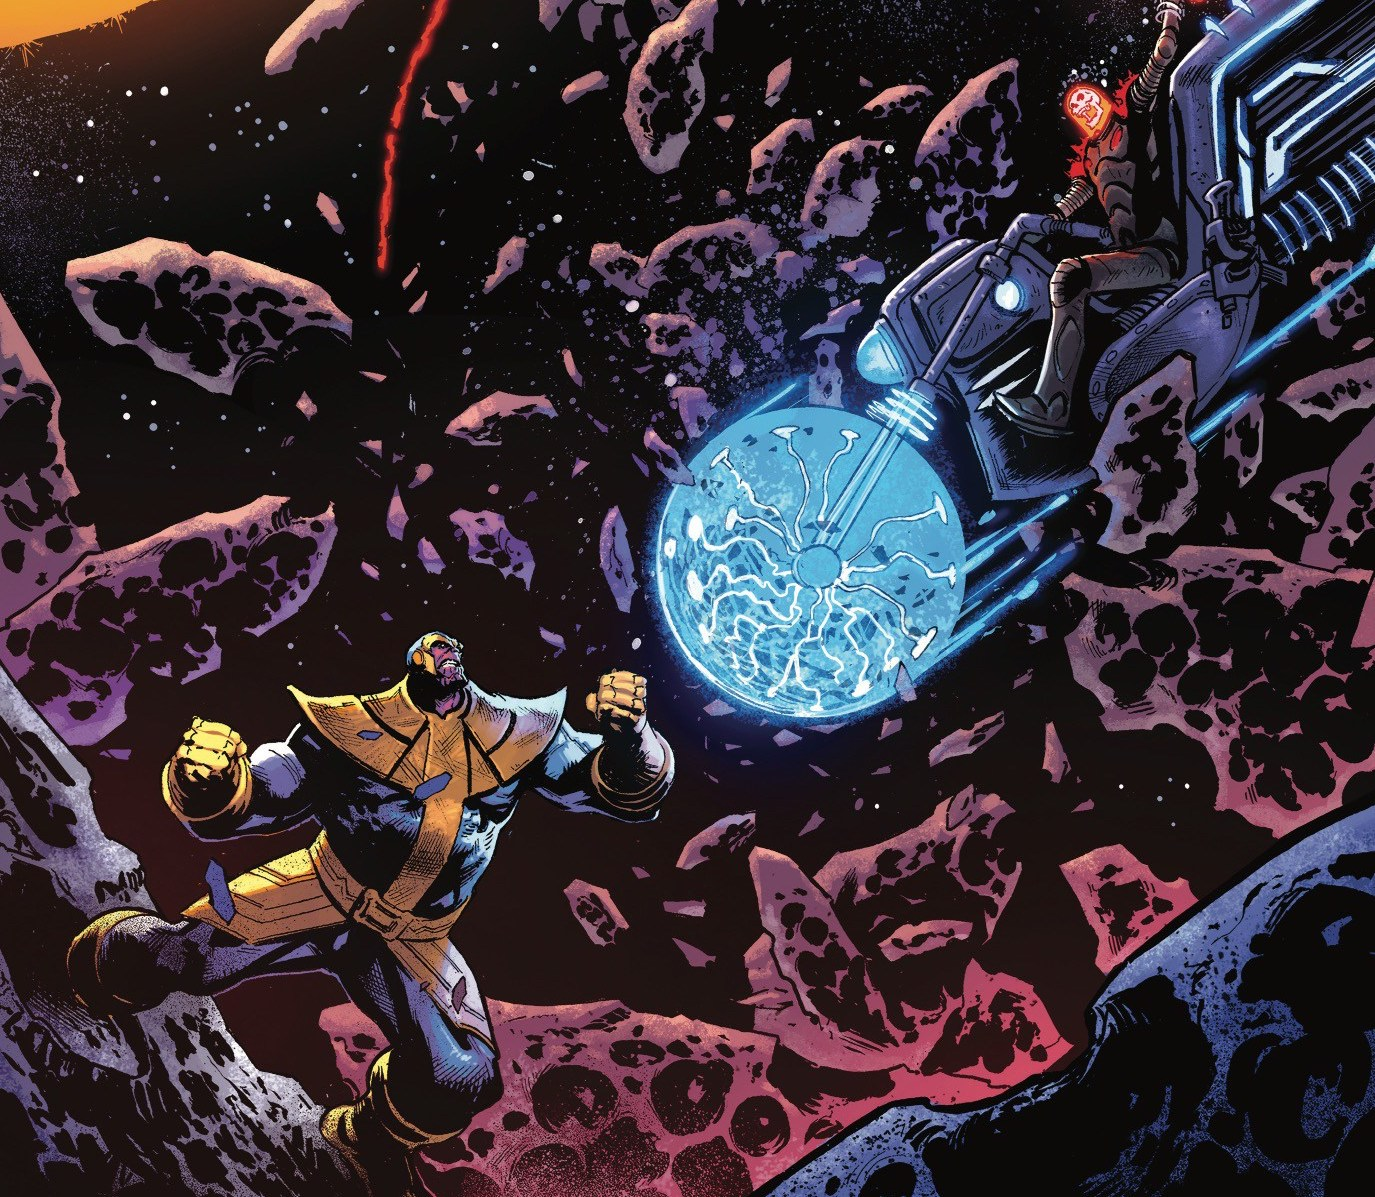 Thanos fights Thanos in another epic installment of Marvel's latest Thanos arc.